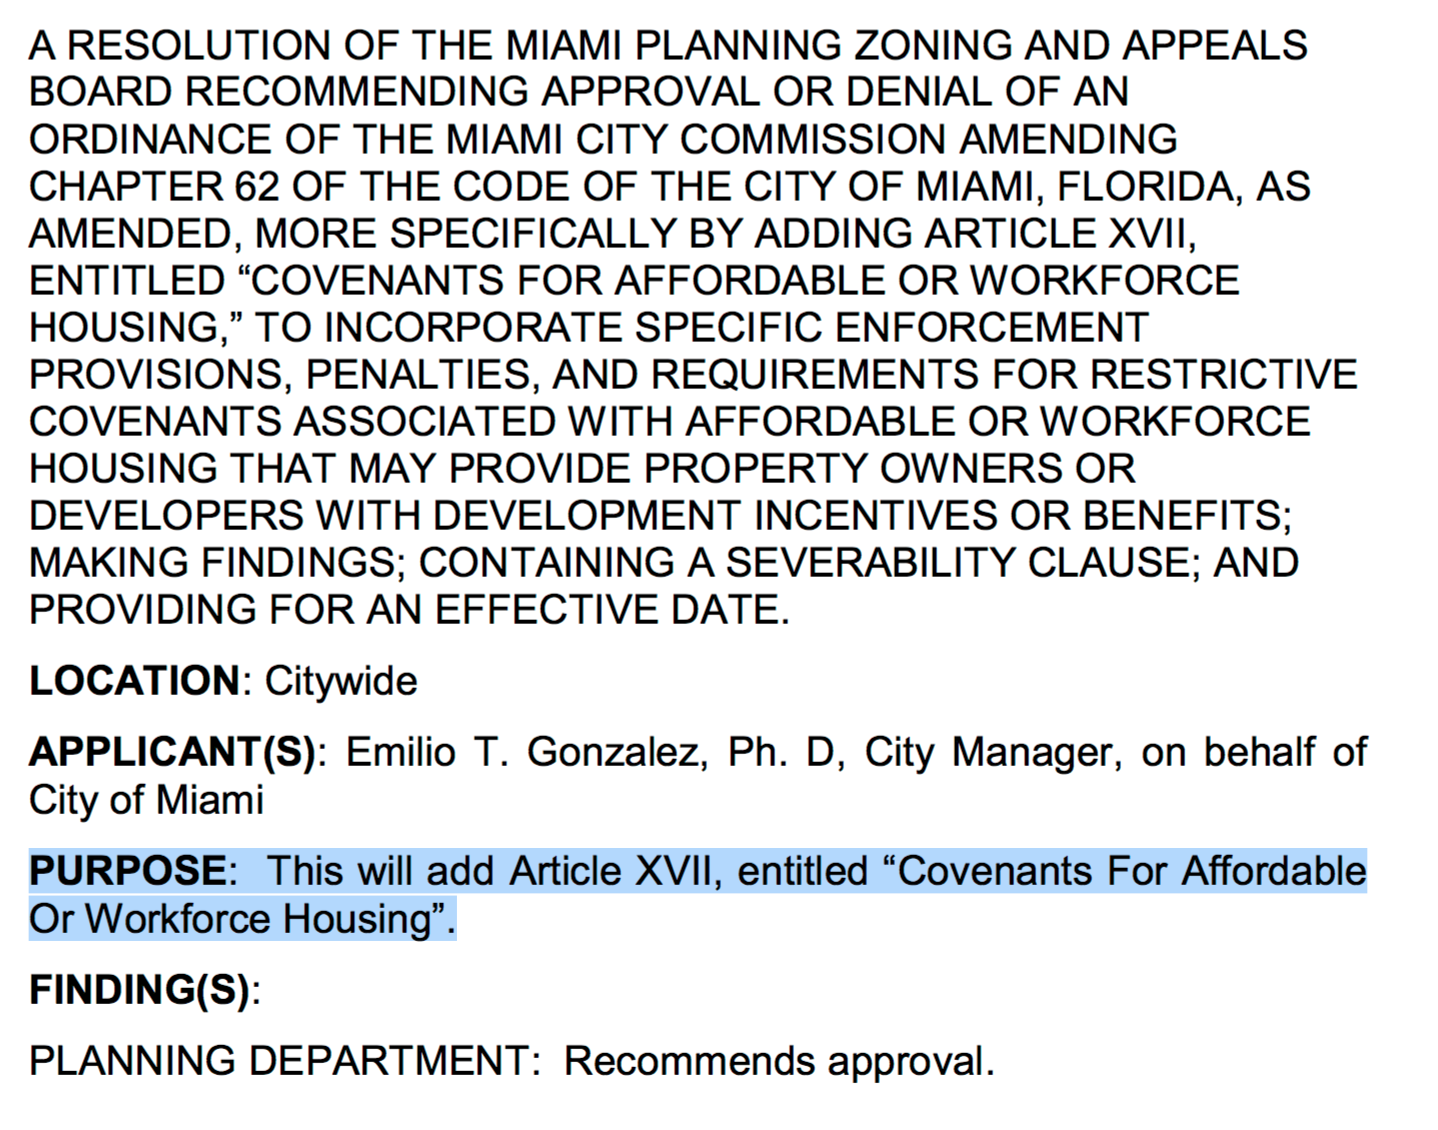 City of Miami Planning, Zoning & Appeals Board Agenda (PDF version)